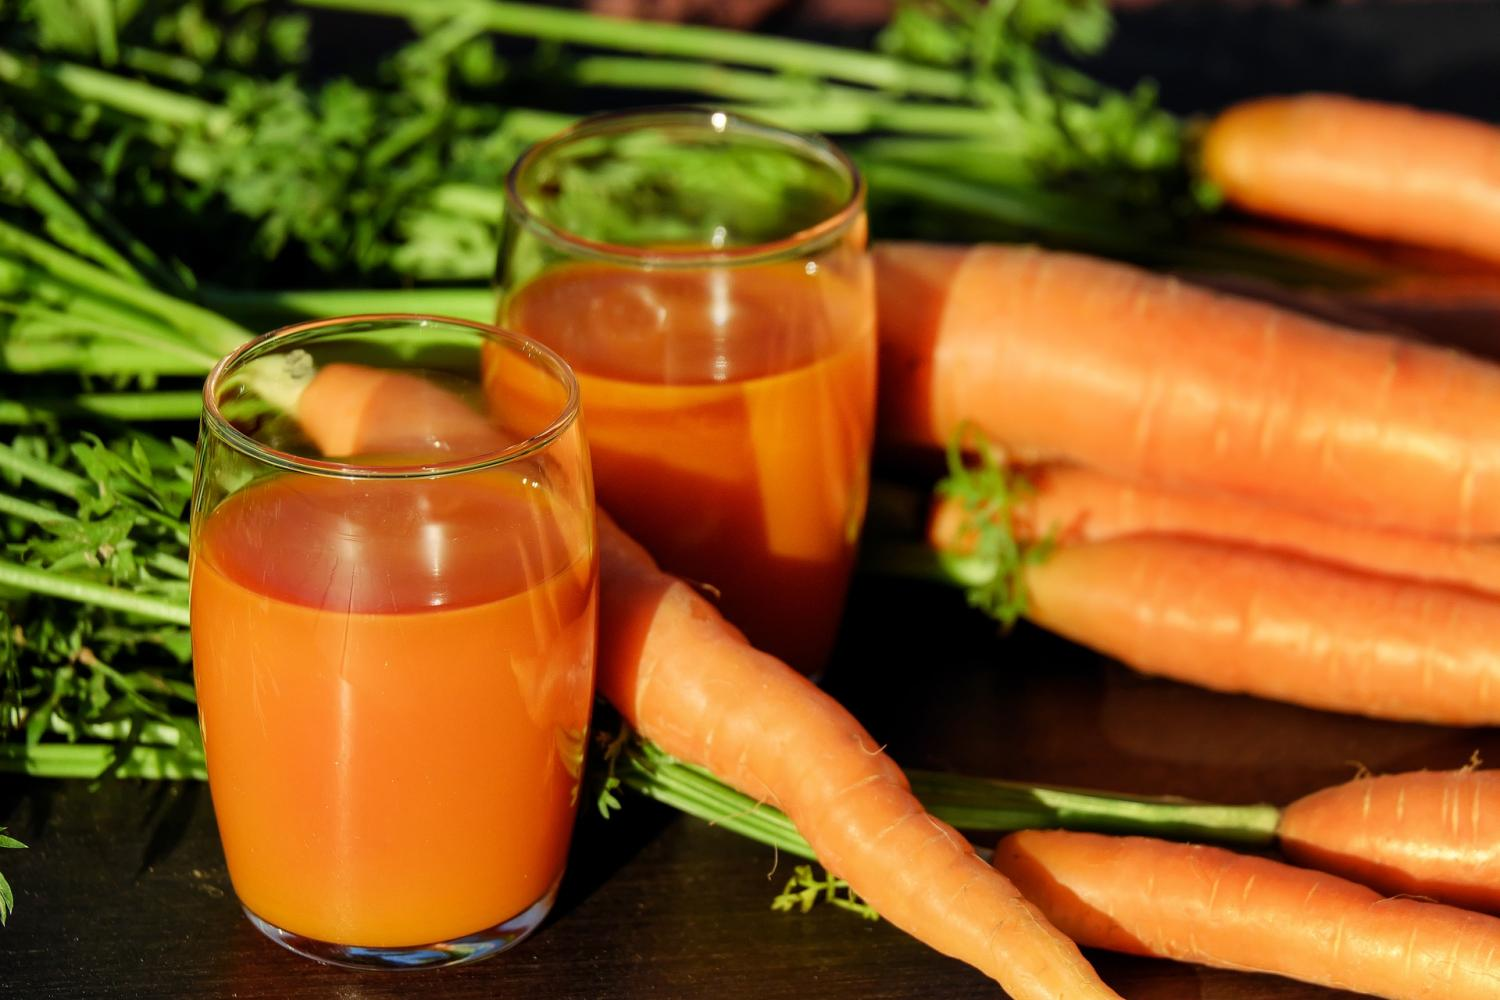 Carrote